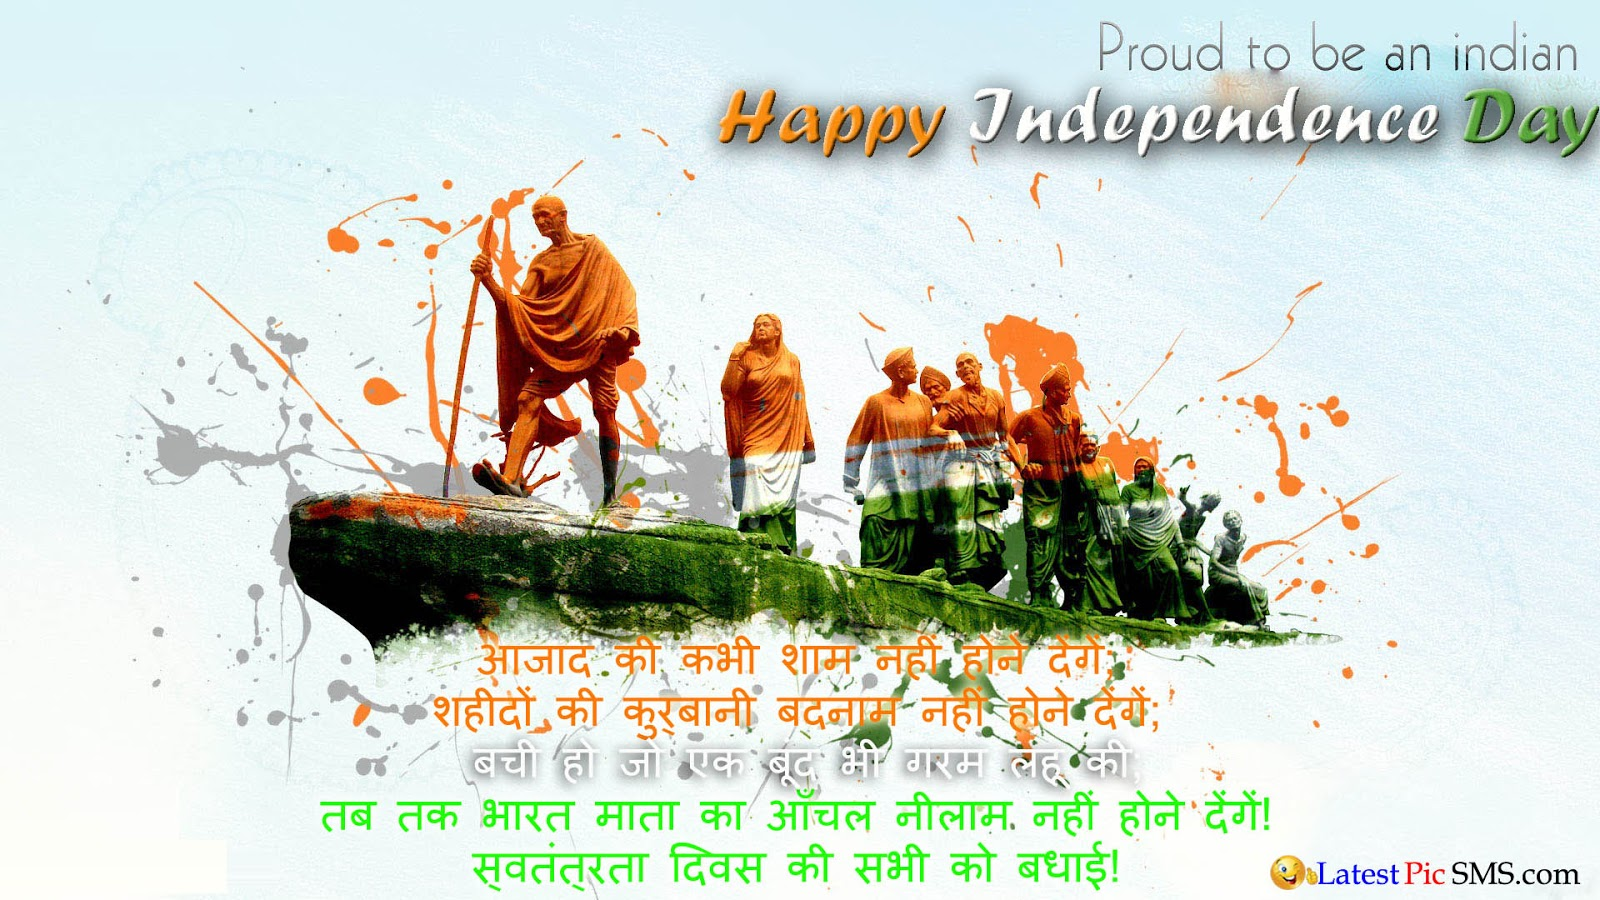 Mahatma Gandhi Independence Day Greetings Photos wallpaper